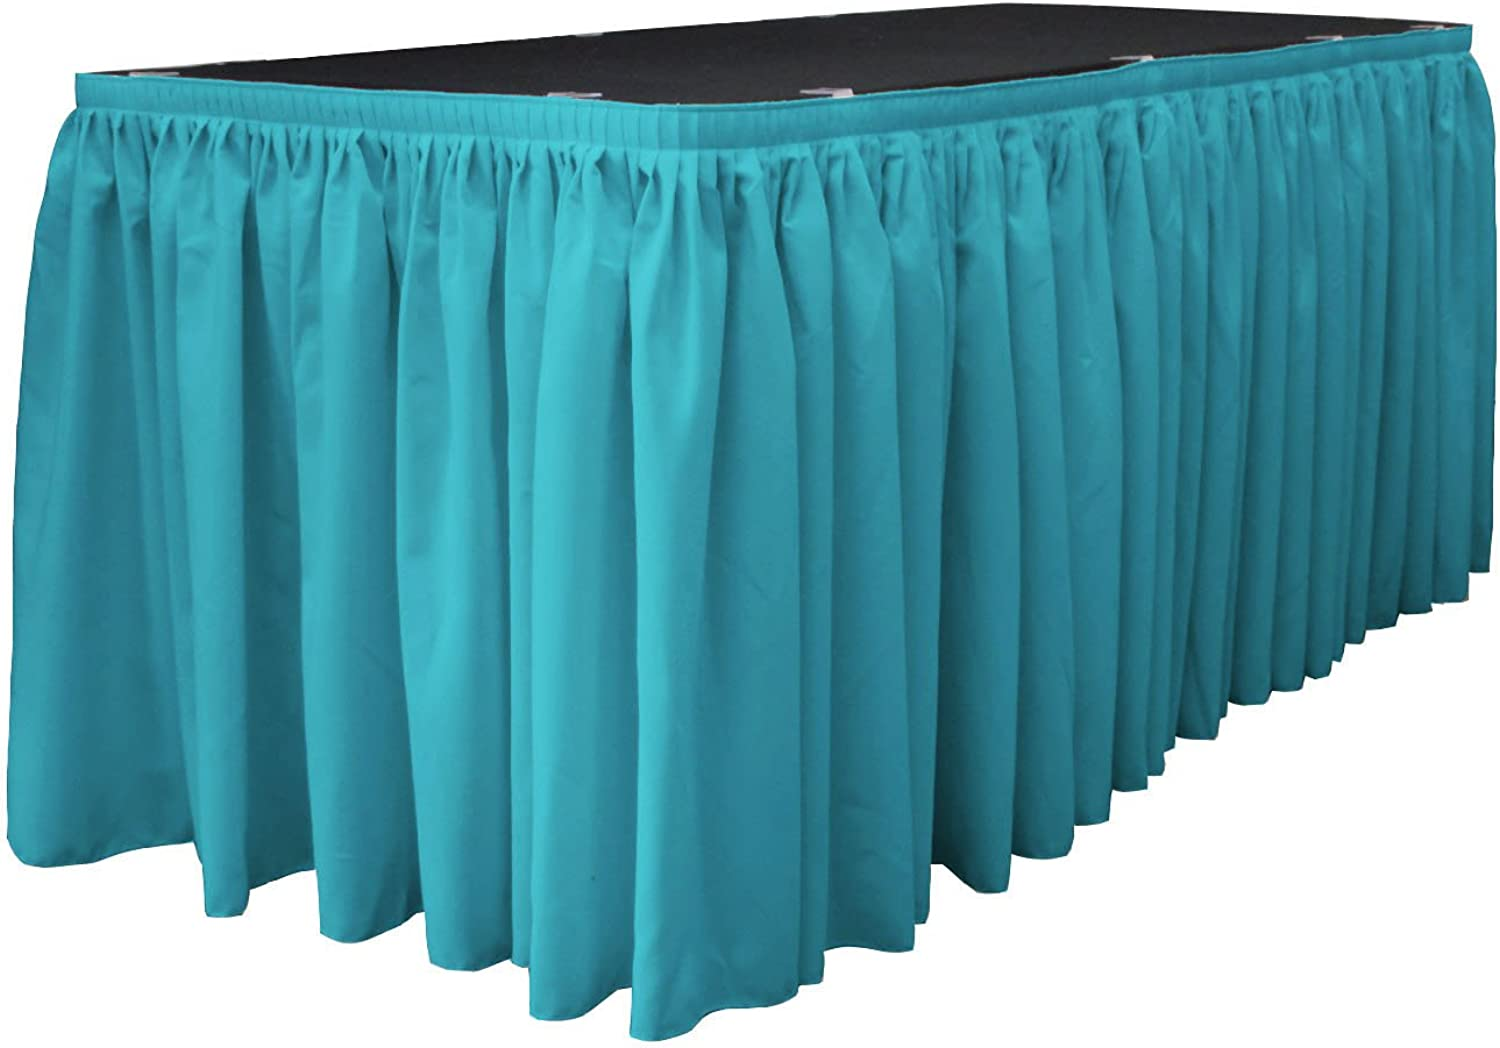 LA Linen Polyester Poplin Pleated Table Skirt with 10 Large Clips, 14-Feet by 29-Inch, Dark Turquoise